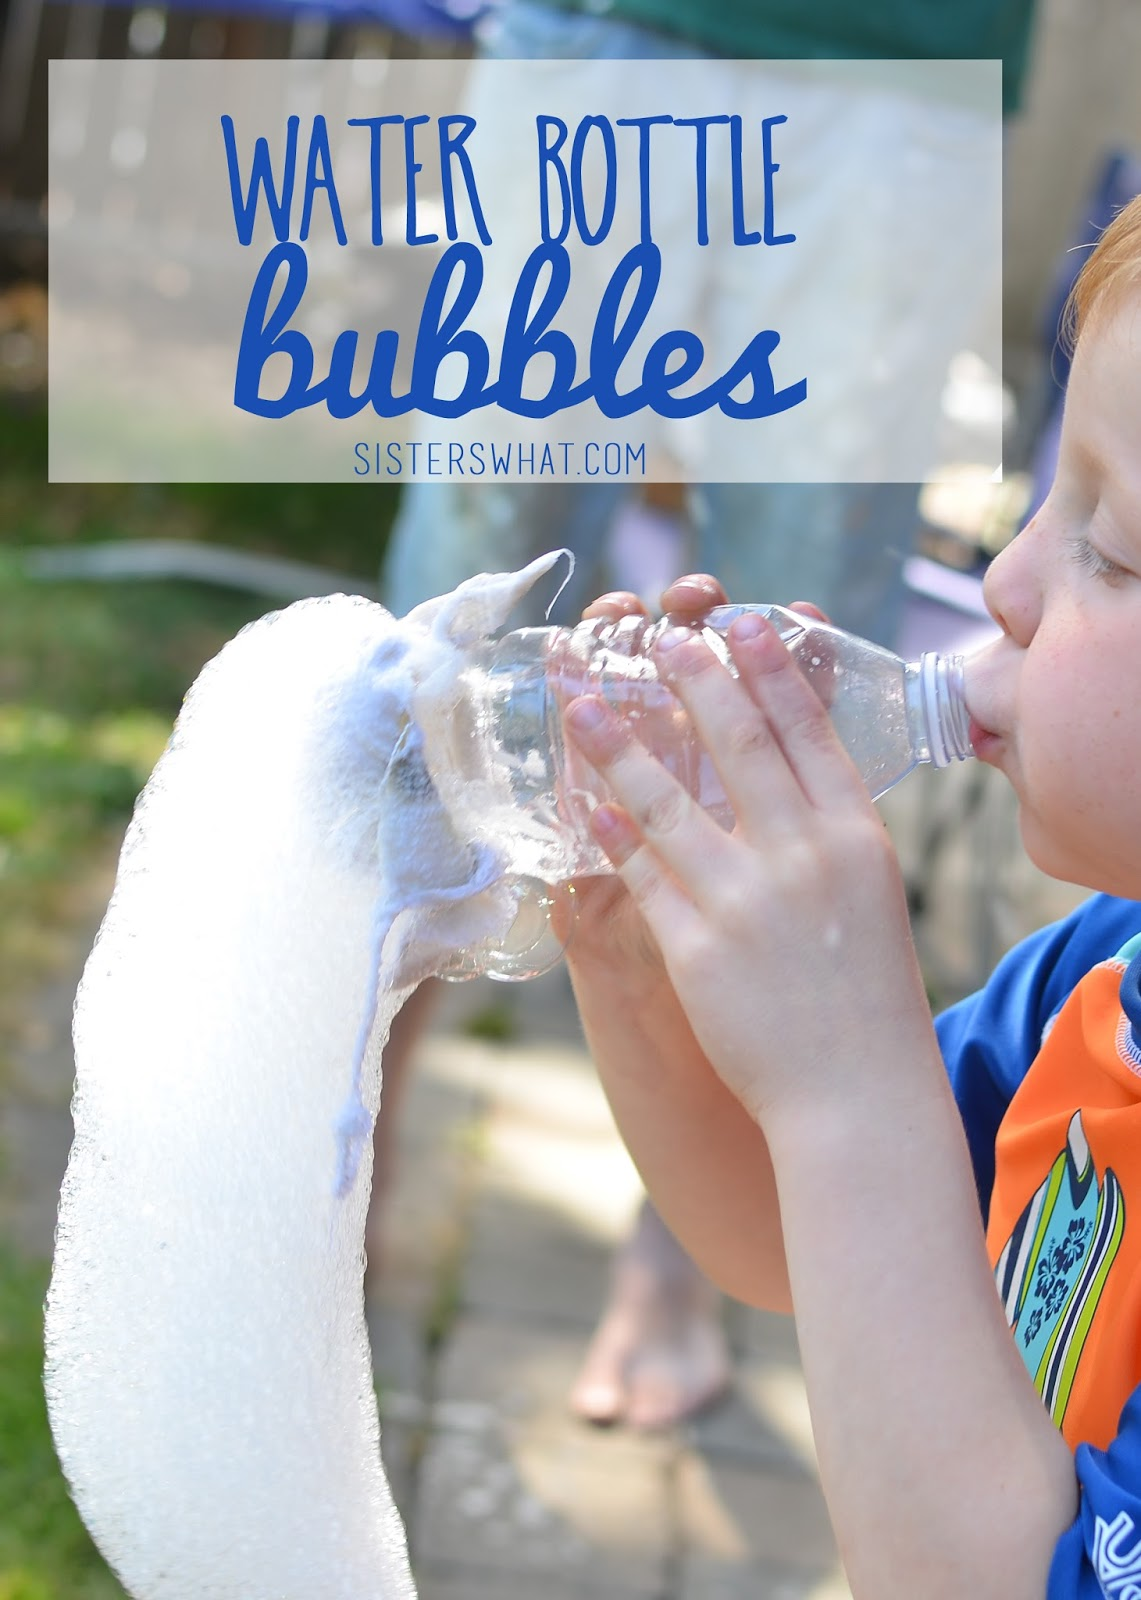 Water bottle Bubble summer fun kid activity